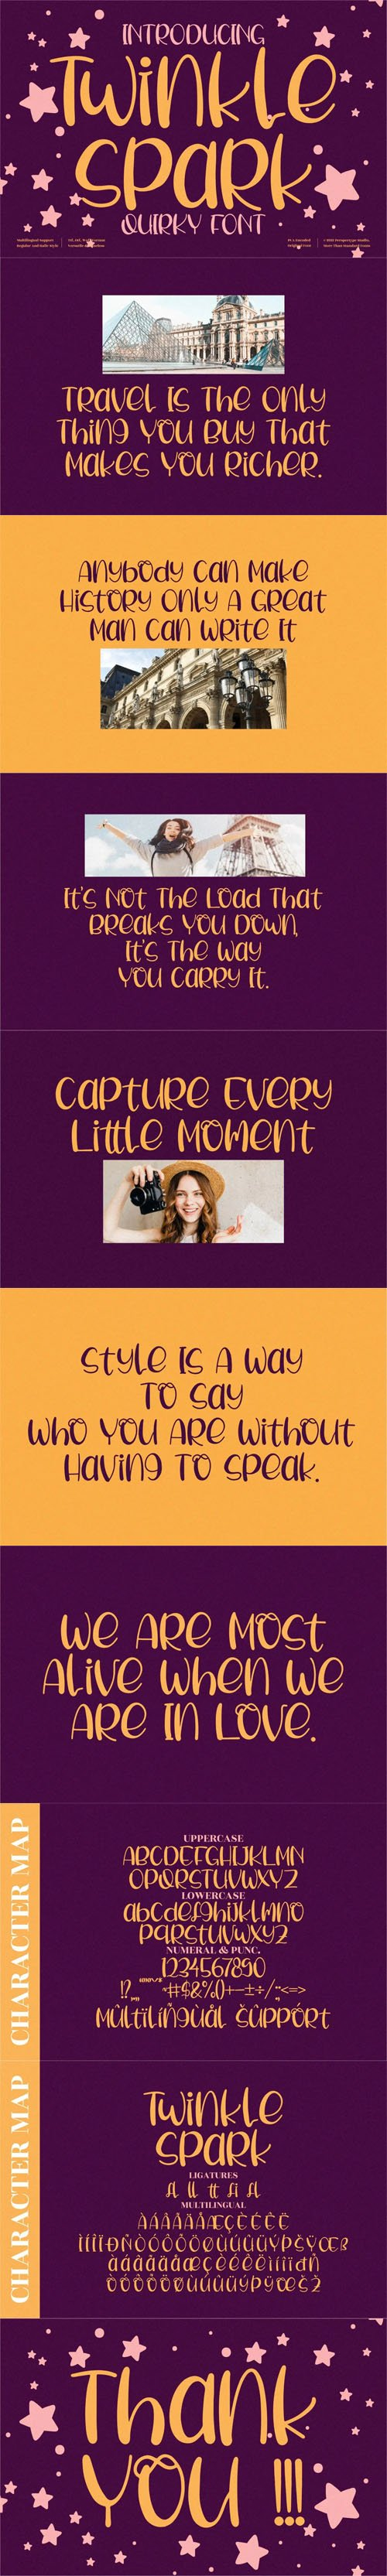 Twinkle Spark - Quirky Handwritten Font